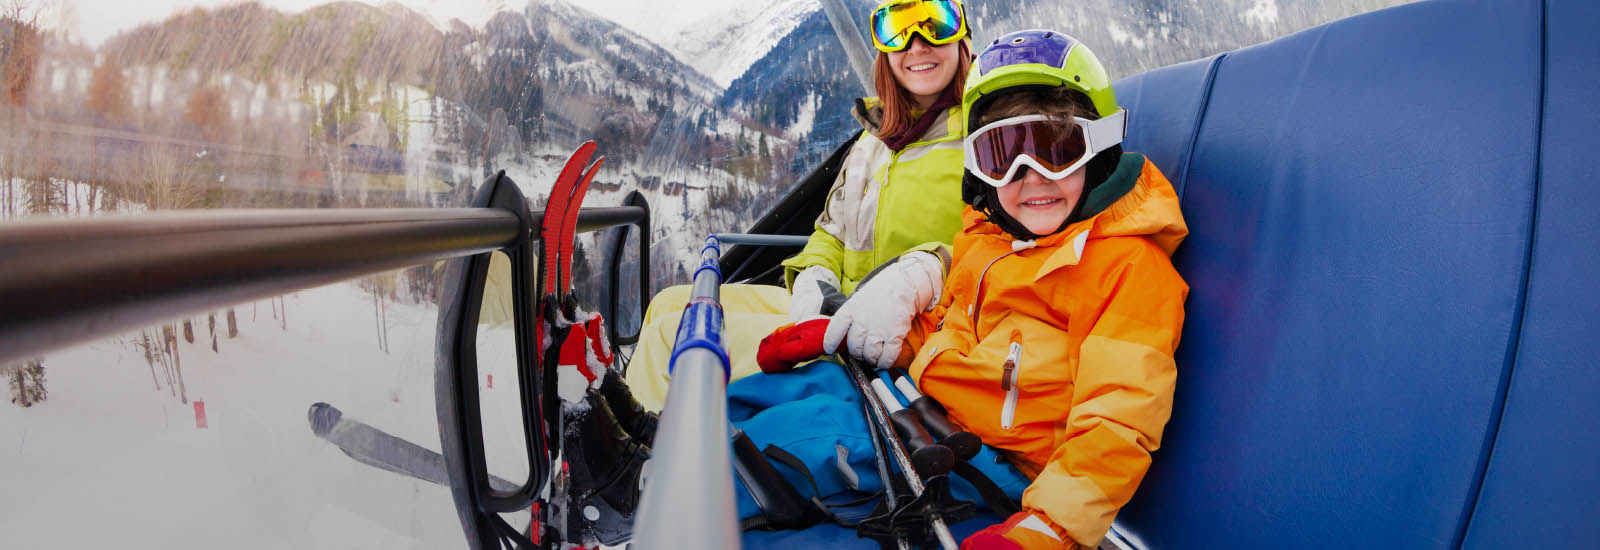 mother and son on ski lift